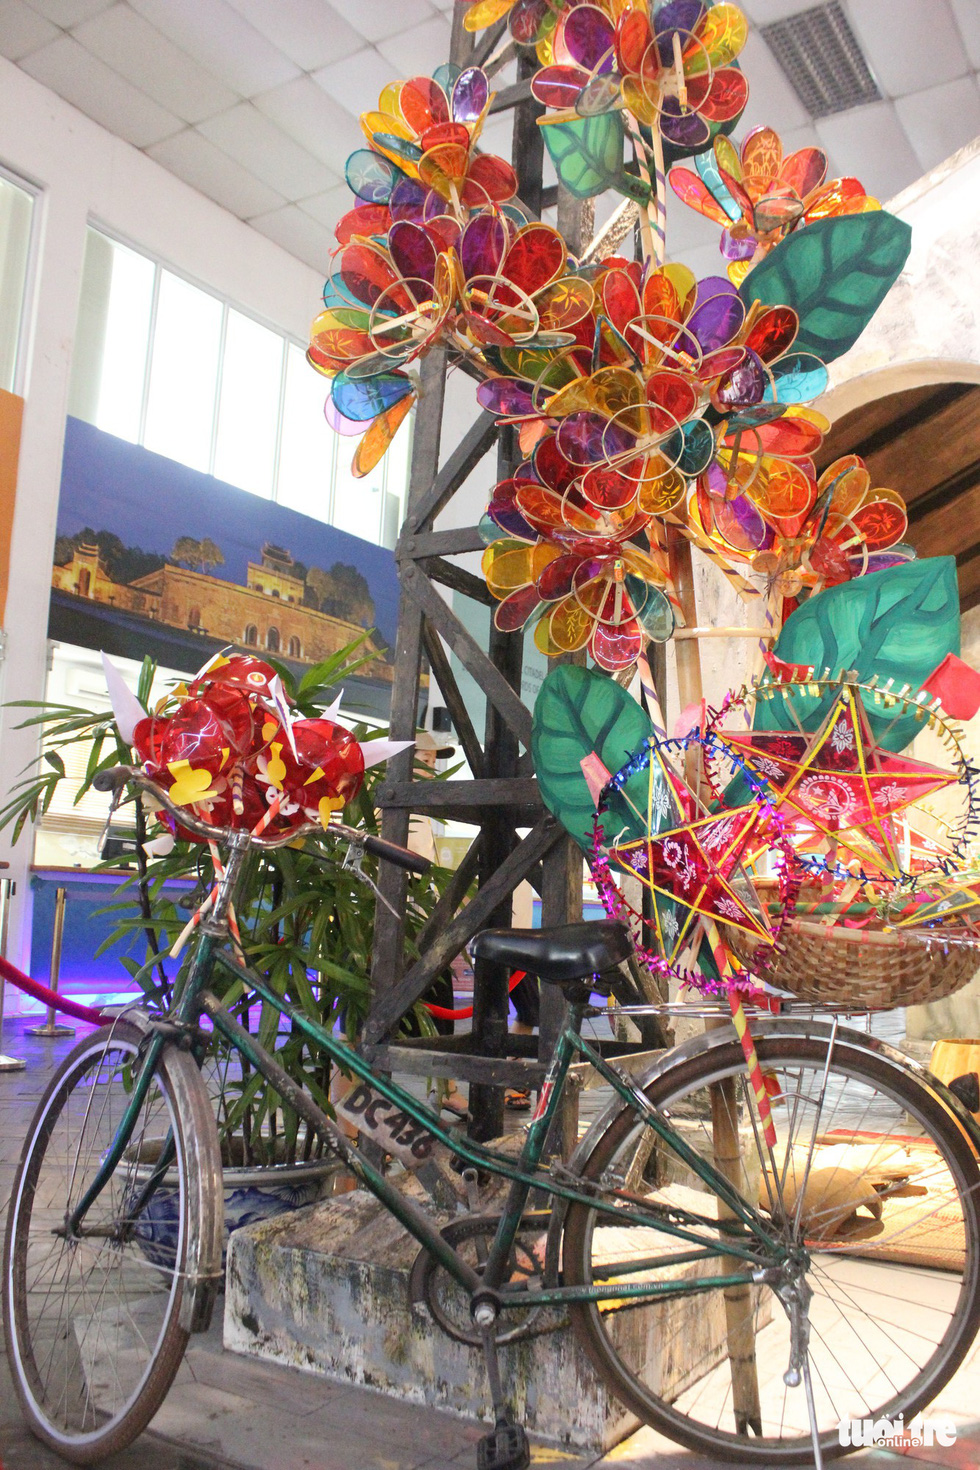 An old bike installed with lanterns is on display at a Mid-Autumn Festival in Hanoi, September 6, 2019. Photo: Thien Dieu / Tuoi Tre